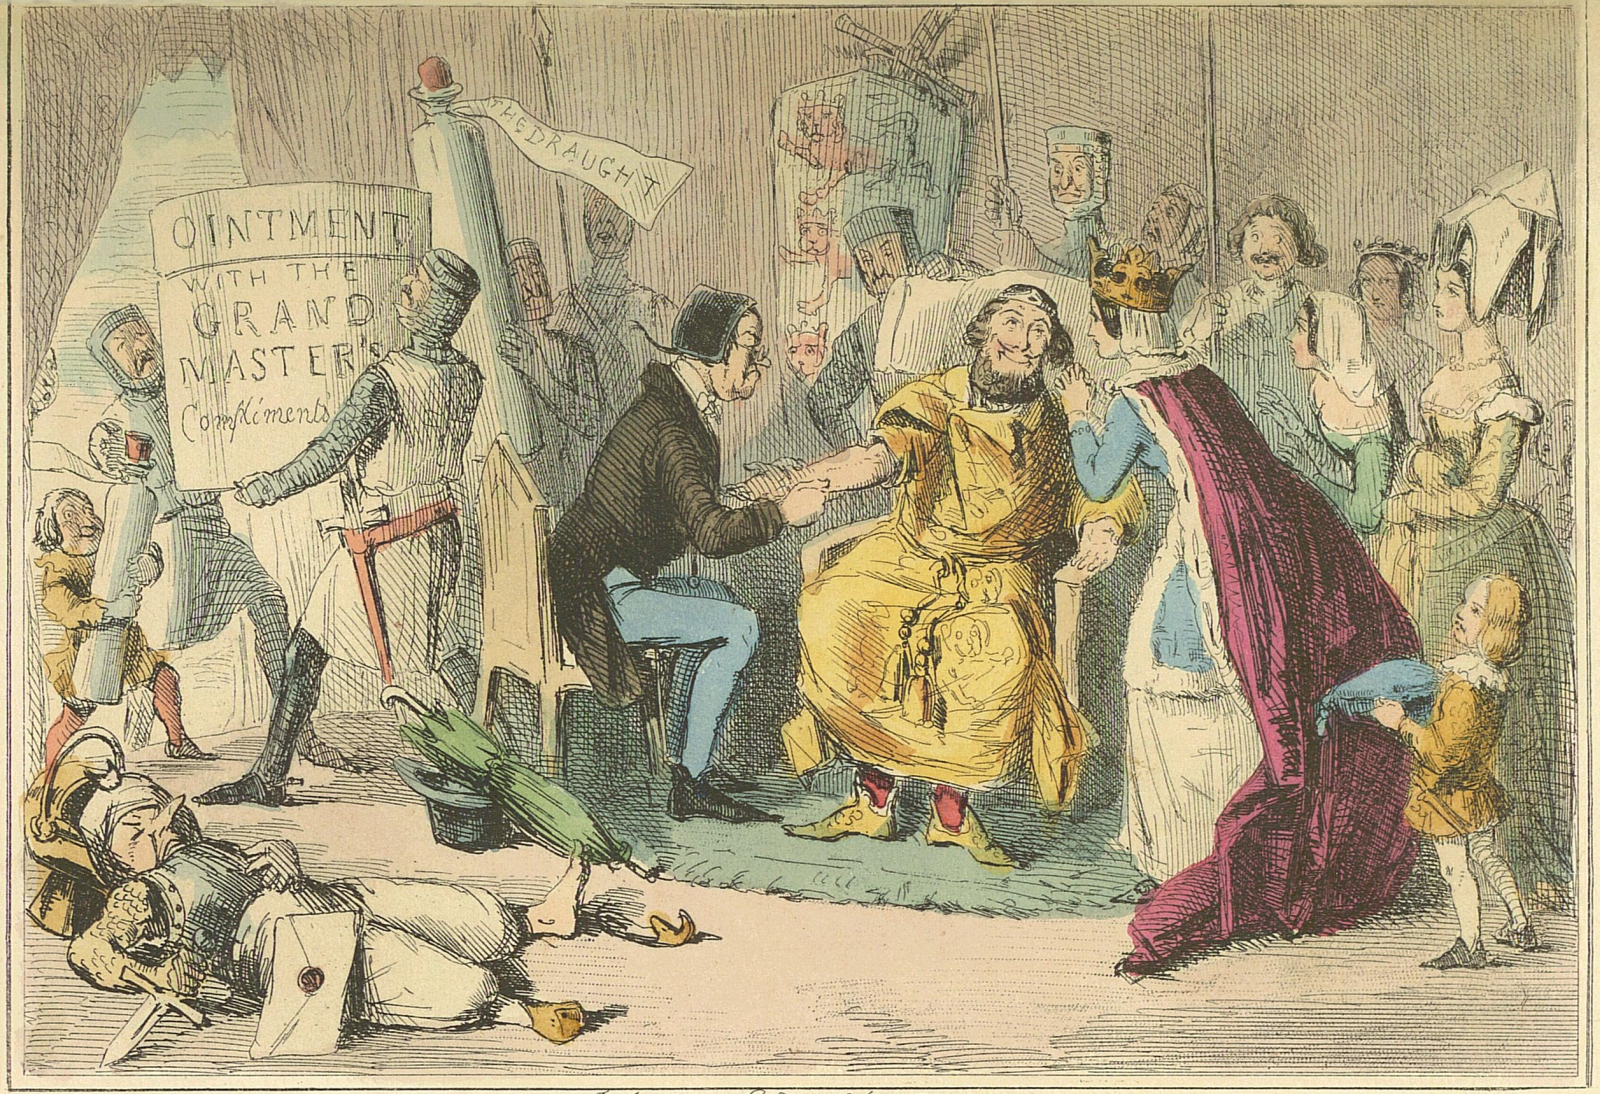 renaissance medicine and medical practices The main change in renaissance medicine was the increase in renaissance anatomy changed medical practice and finally sounded the death knell for the harmful.